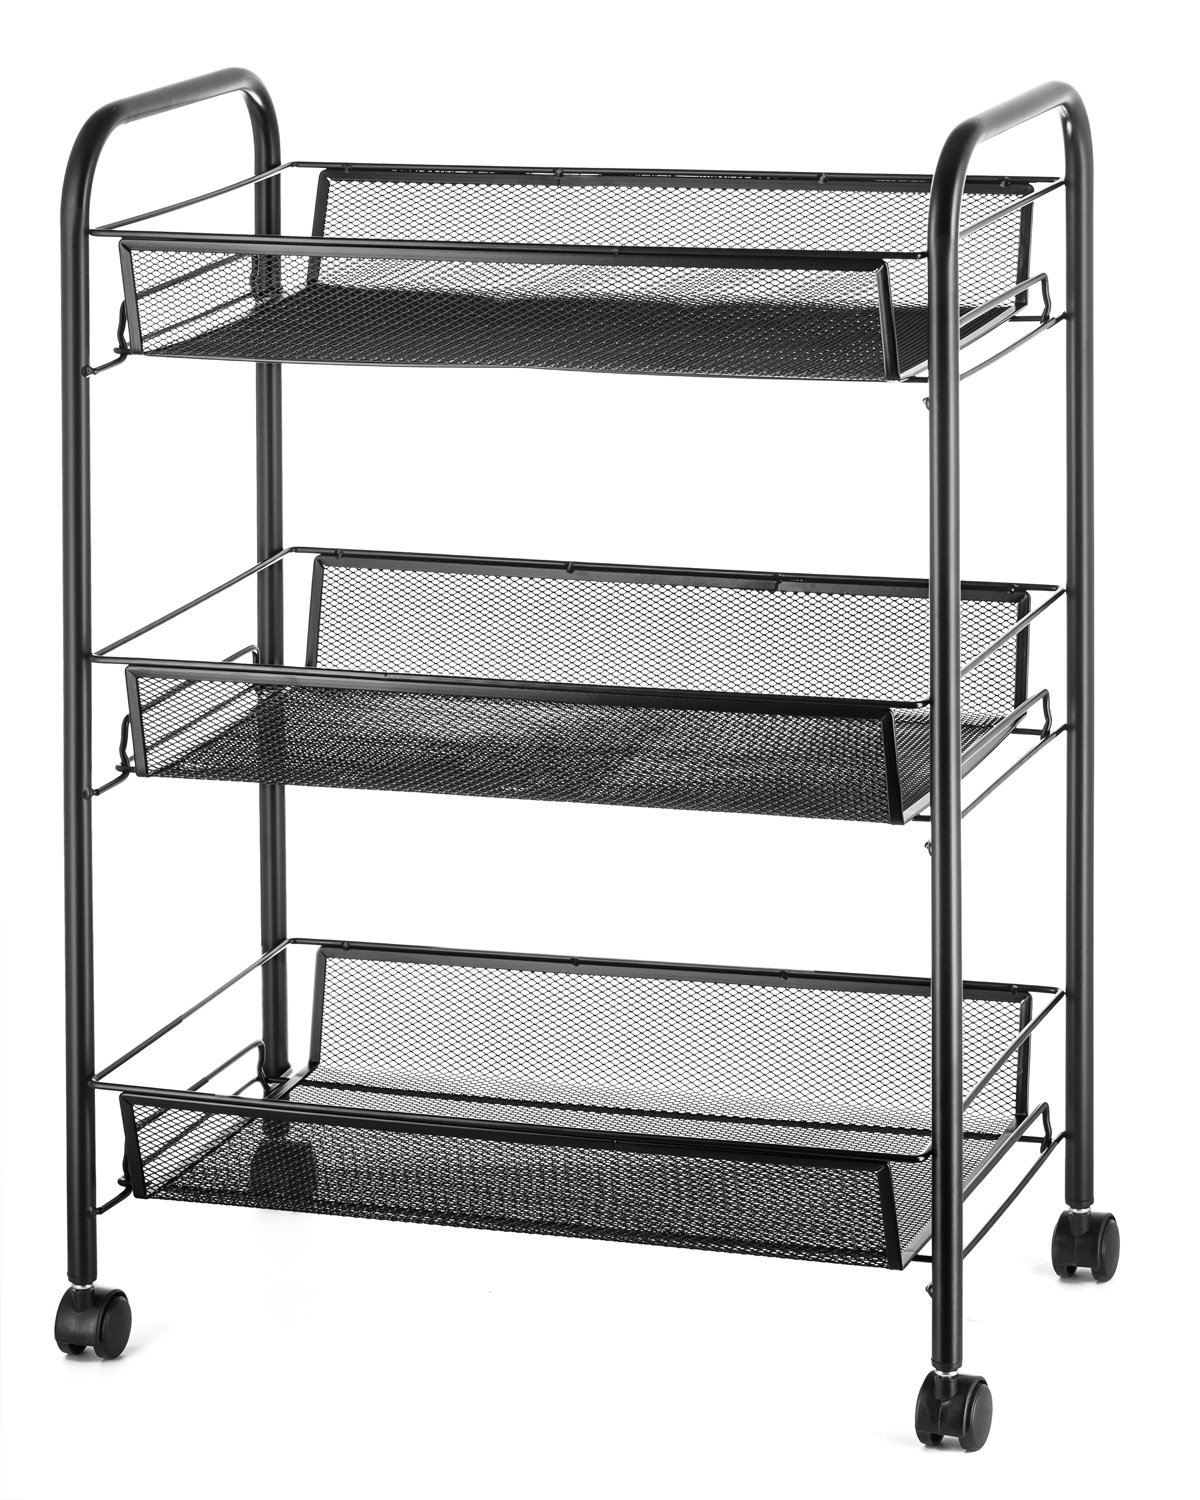 Halter 3-Tier Rolling Basket Stand, Full Metal Rolling Trolley for Kitchen & Bathroom - Three Tier Storage Cart w/Shelves & Wheels - 24.75'' X 17.25'' - Black